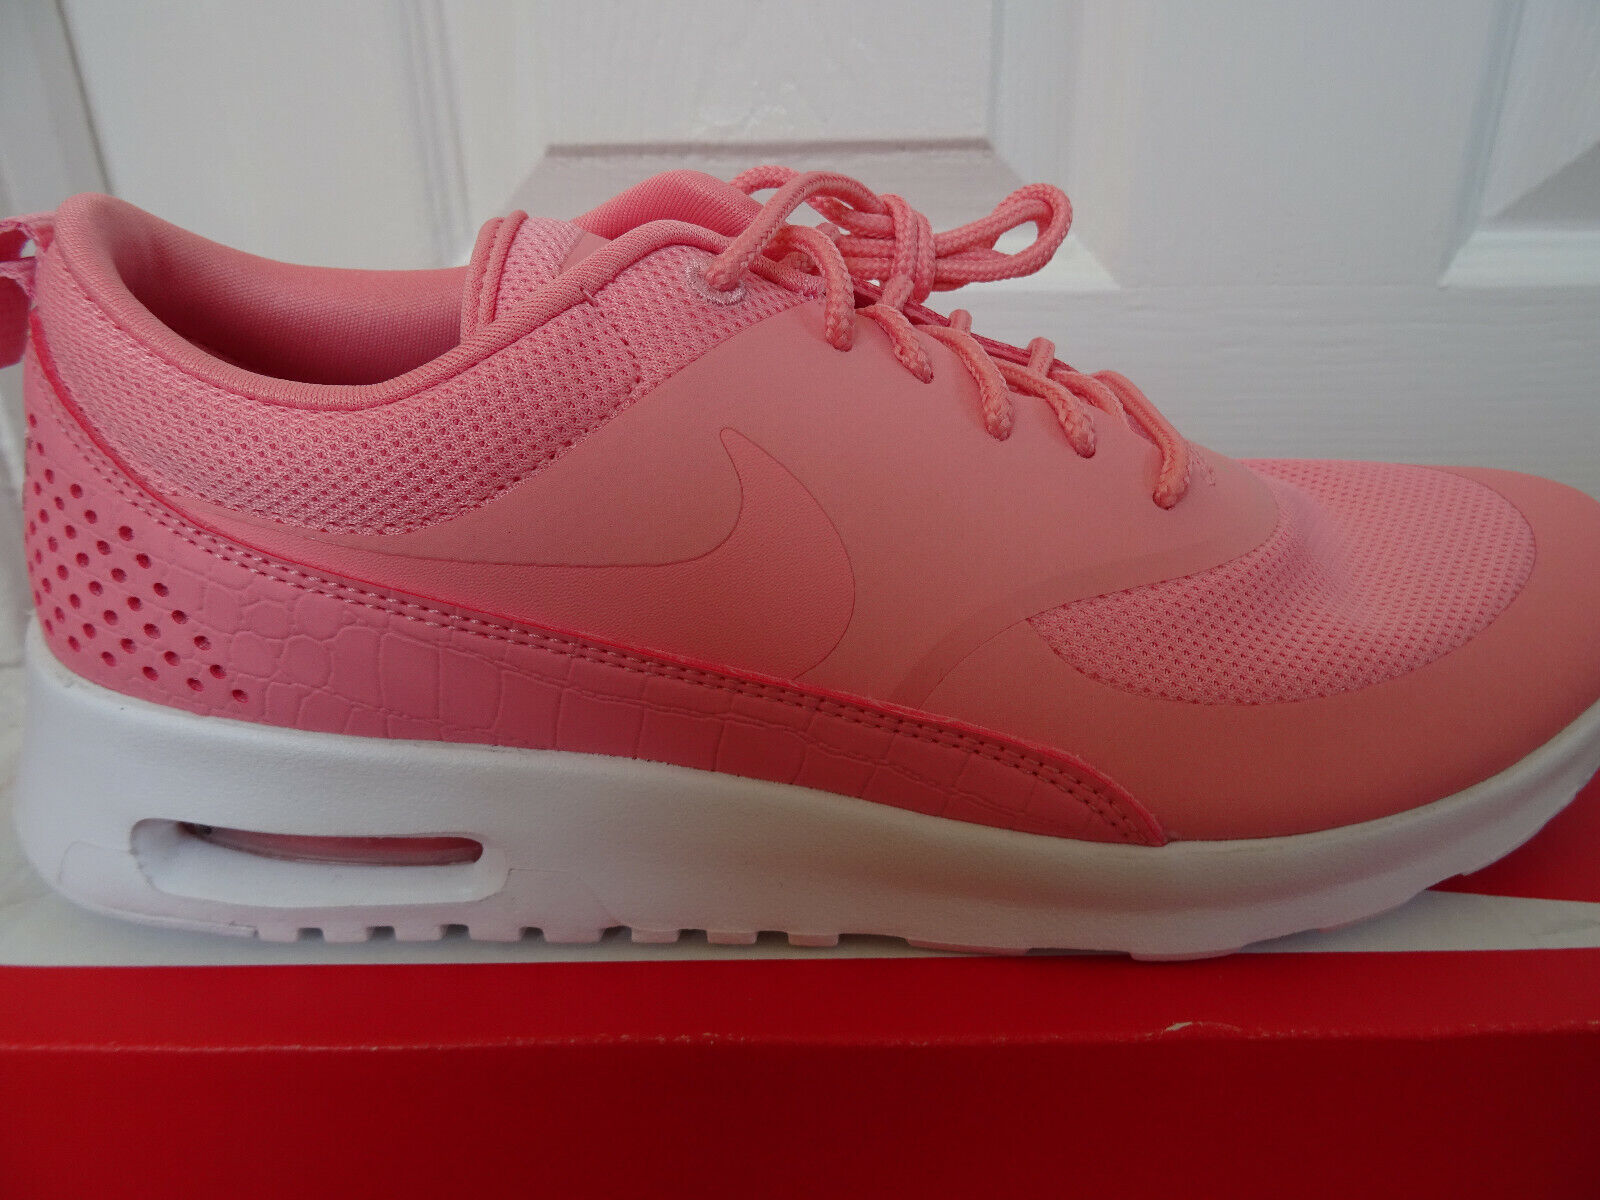 Nike Air Max Thea wmns trainers zapatos 599409 803 uk 5.5 eu 39 us 8 NEW+BOX